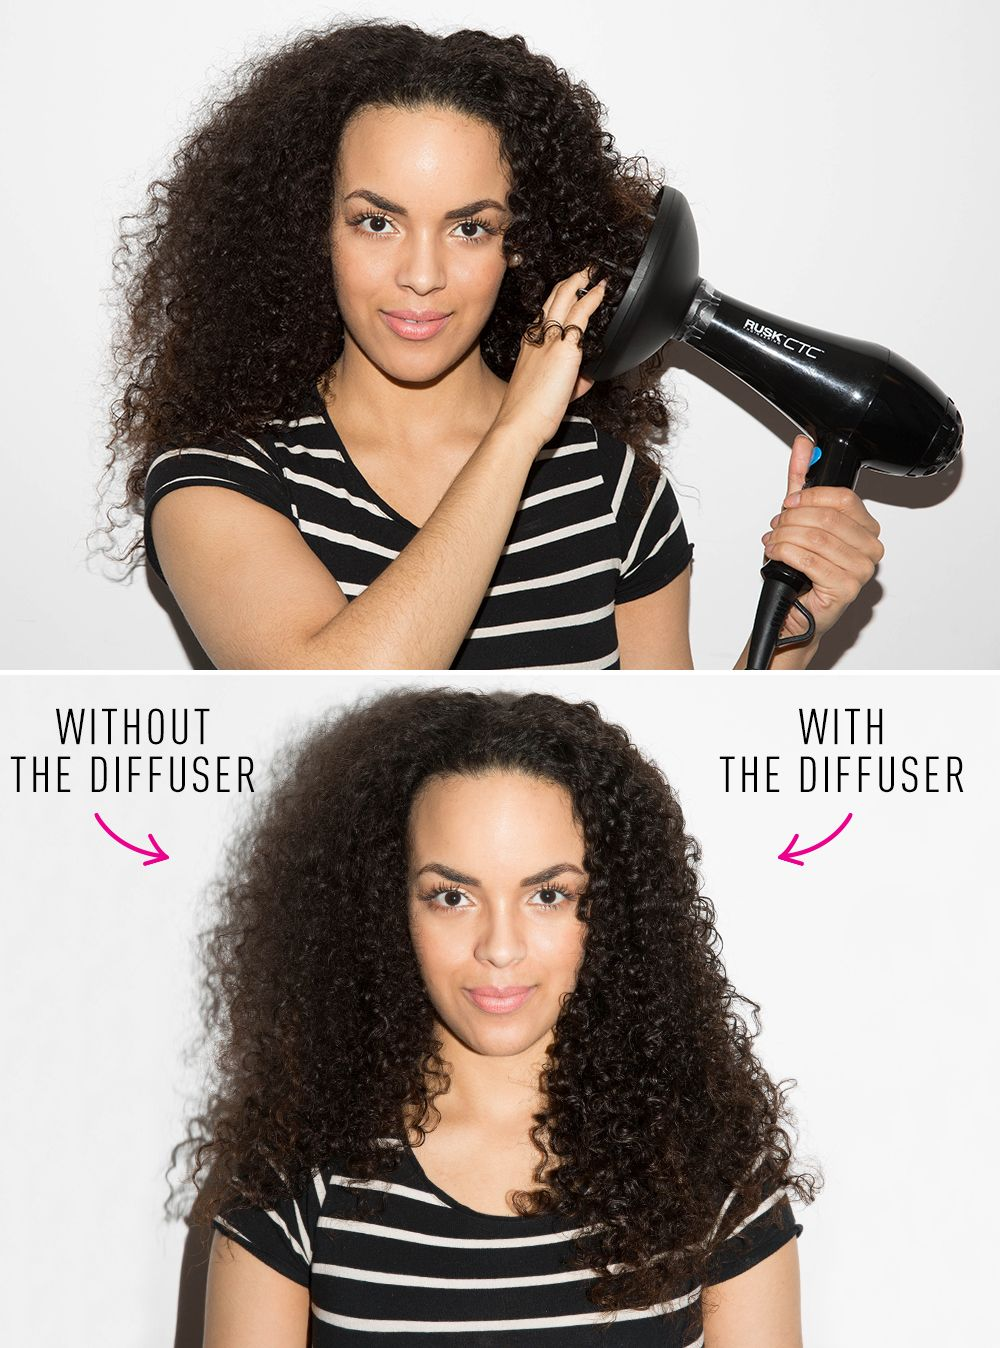 23 Life Altering Ways To Use A Blow Dryer Hair Diffuser Curly Hair Styles Hair Dryer Diffuser